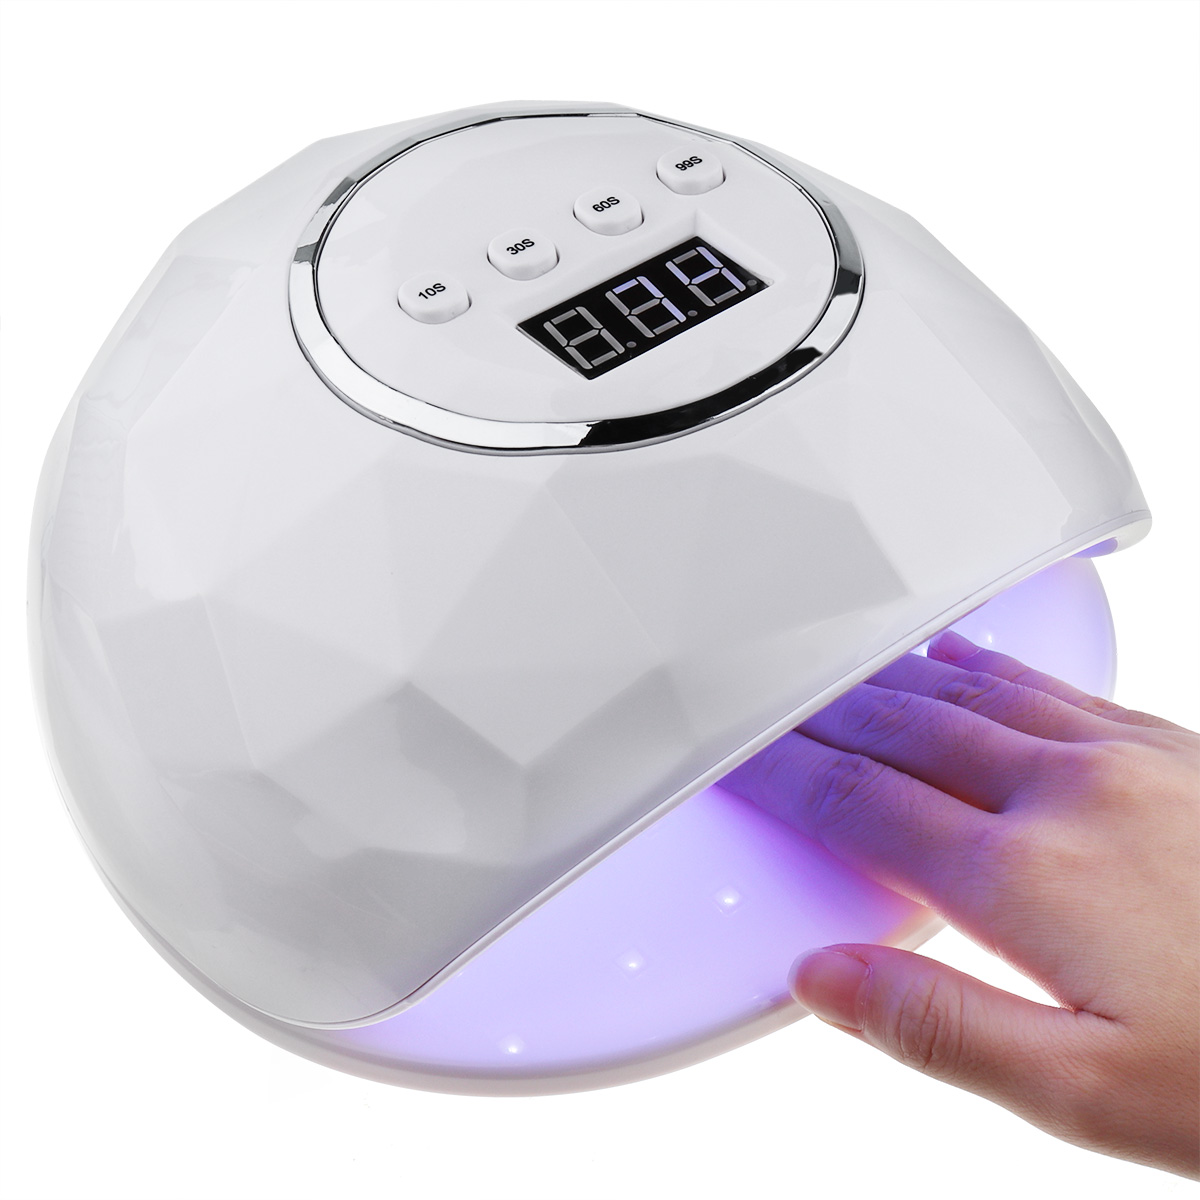 86W <font><b>UV</b></font> <font><b>LED</b></font> Lamp Nail Art Dryer 39pcs <font><b>LED</b></font> Gel Polish Fast Curing Nail Lamp Smart Auto Sensor Timer Nail Manicure Machine image